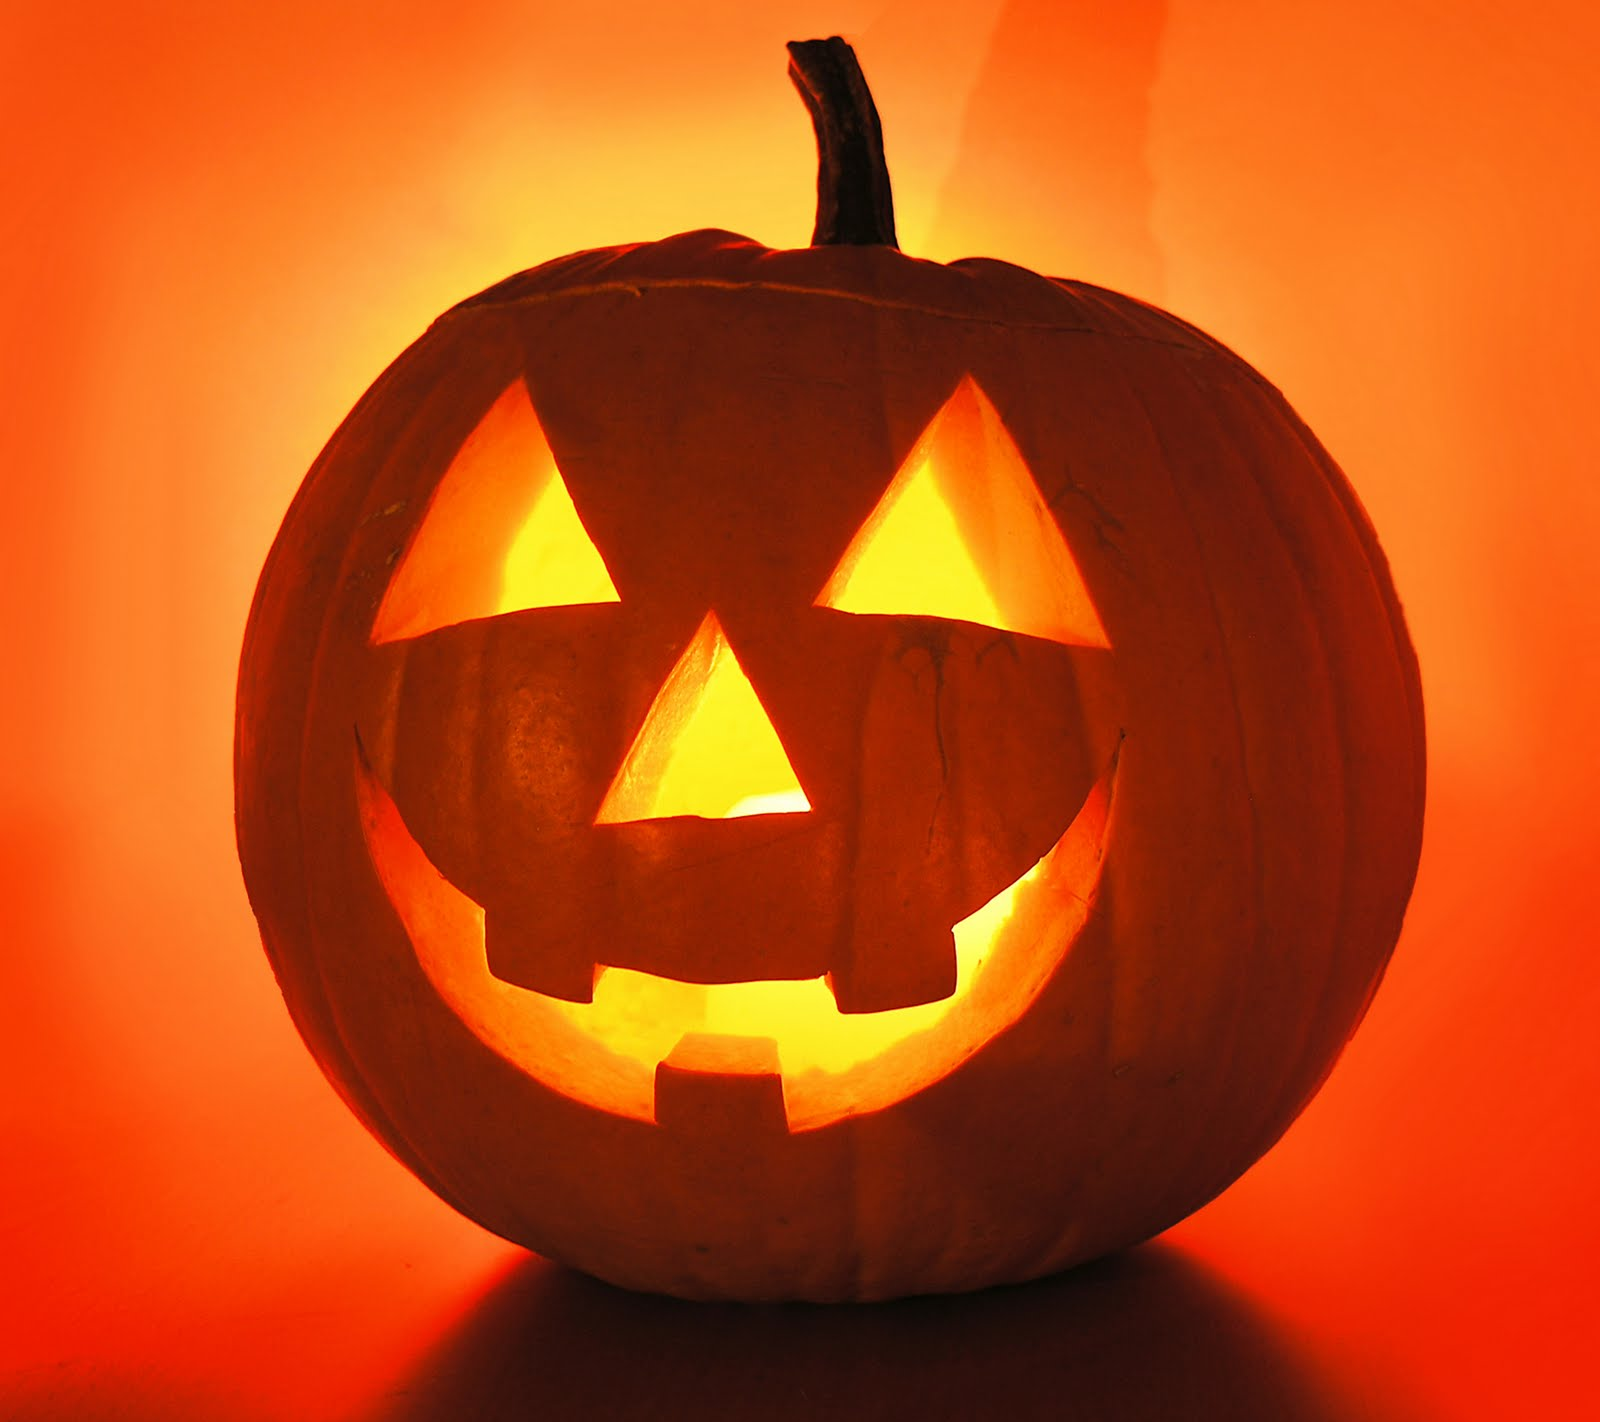 Eckert S Country Store Amp Farms Carving The Perfect Jack O Lantern